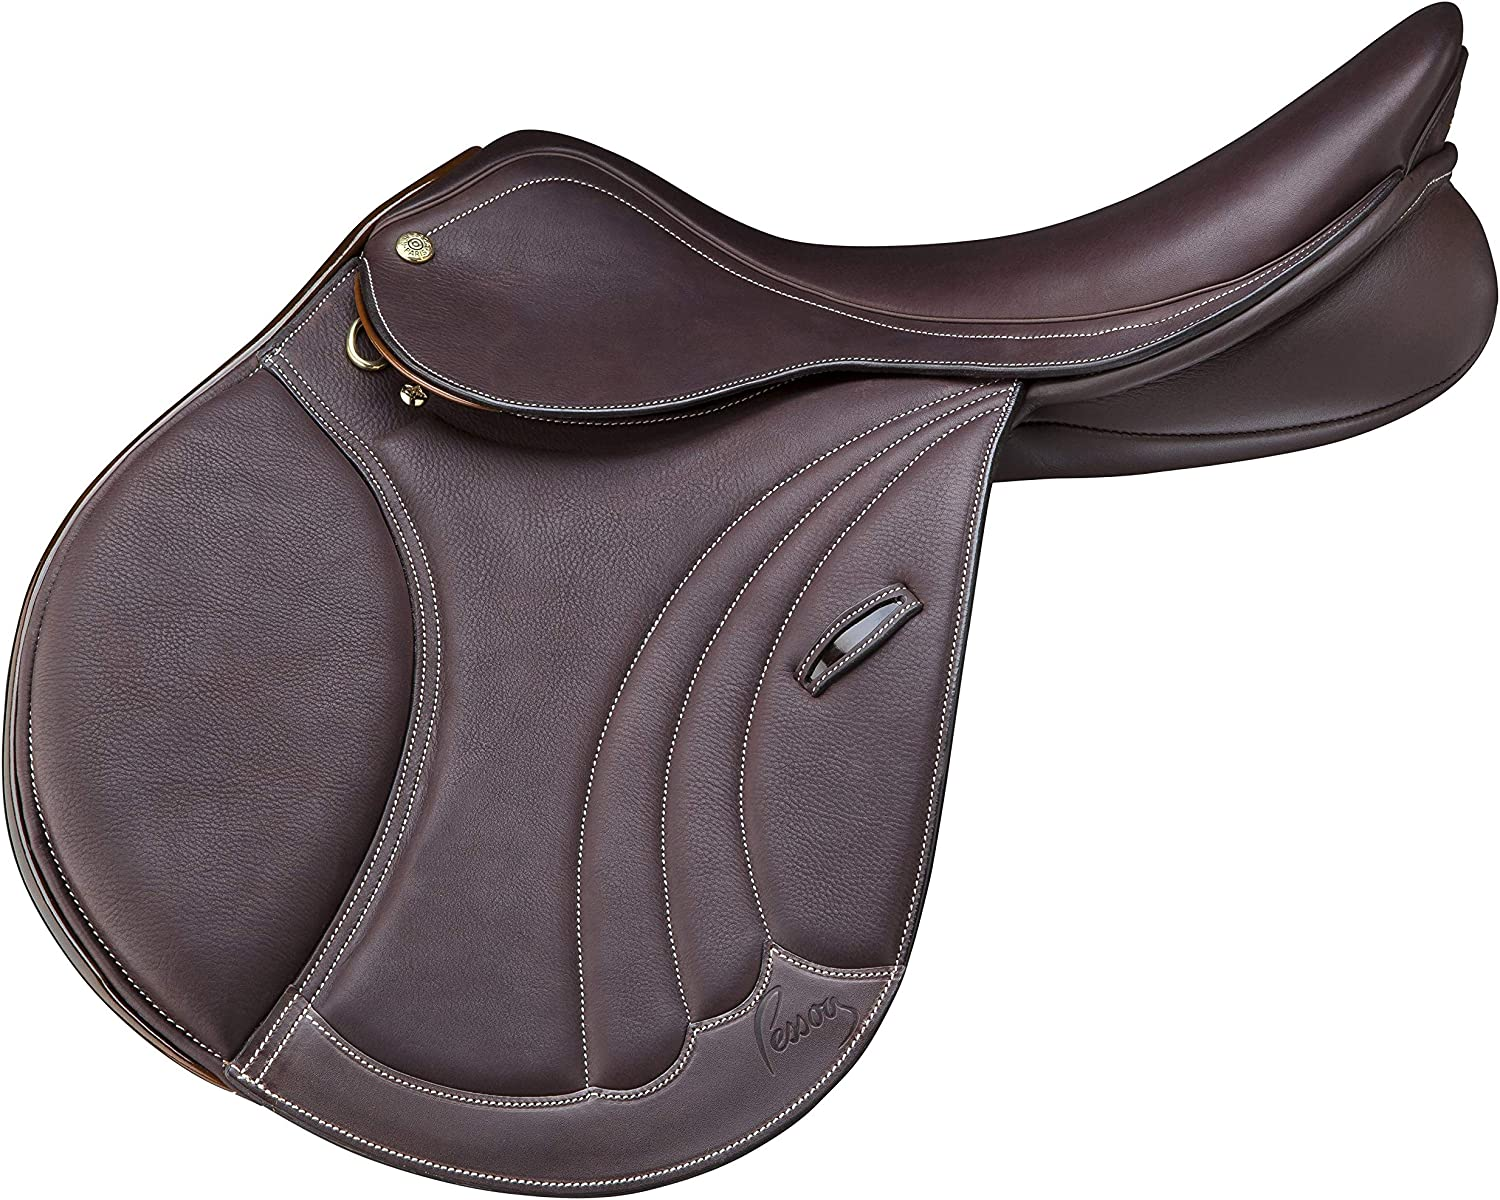 Pessoa Safety and trust Tomboy II 55% OFF Leather Saddle Covered